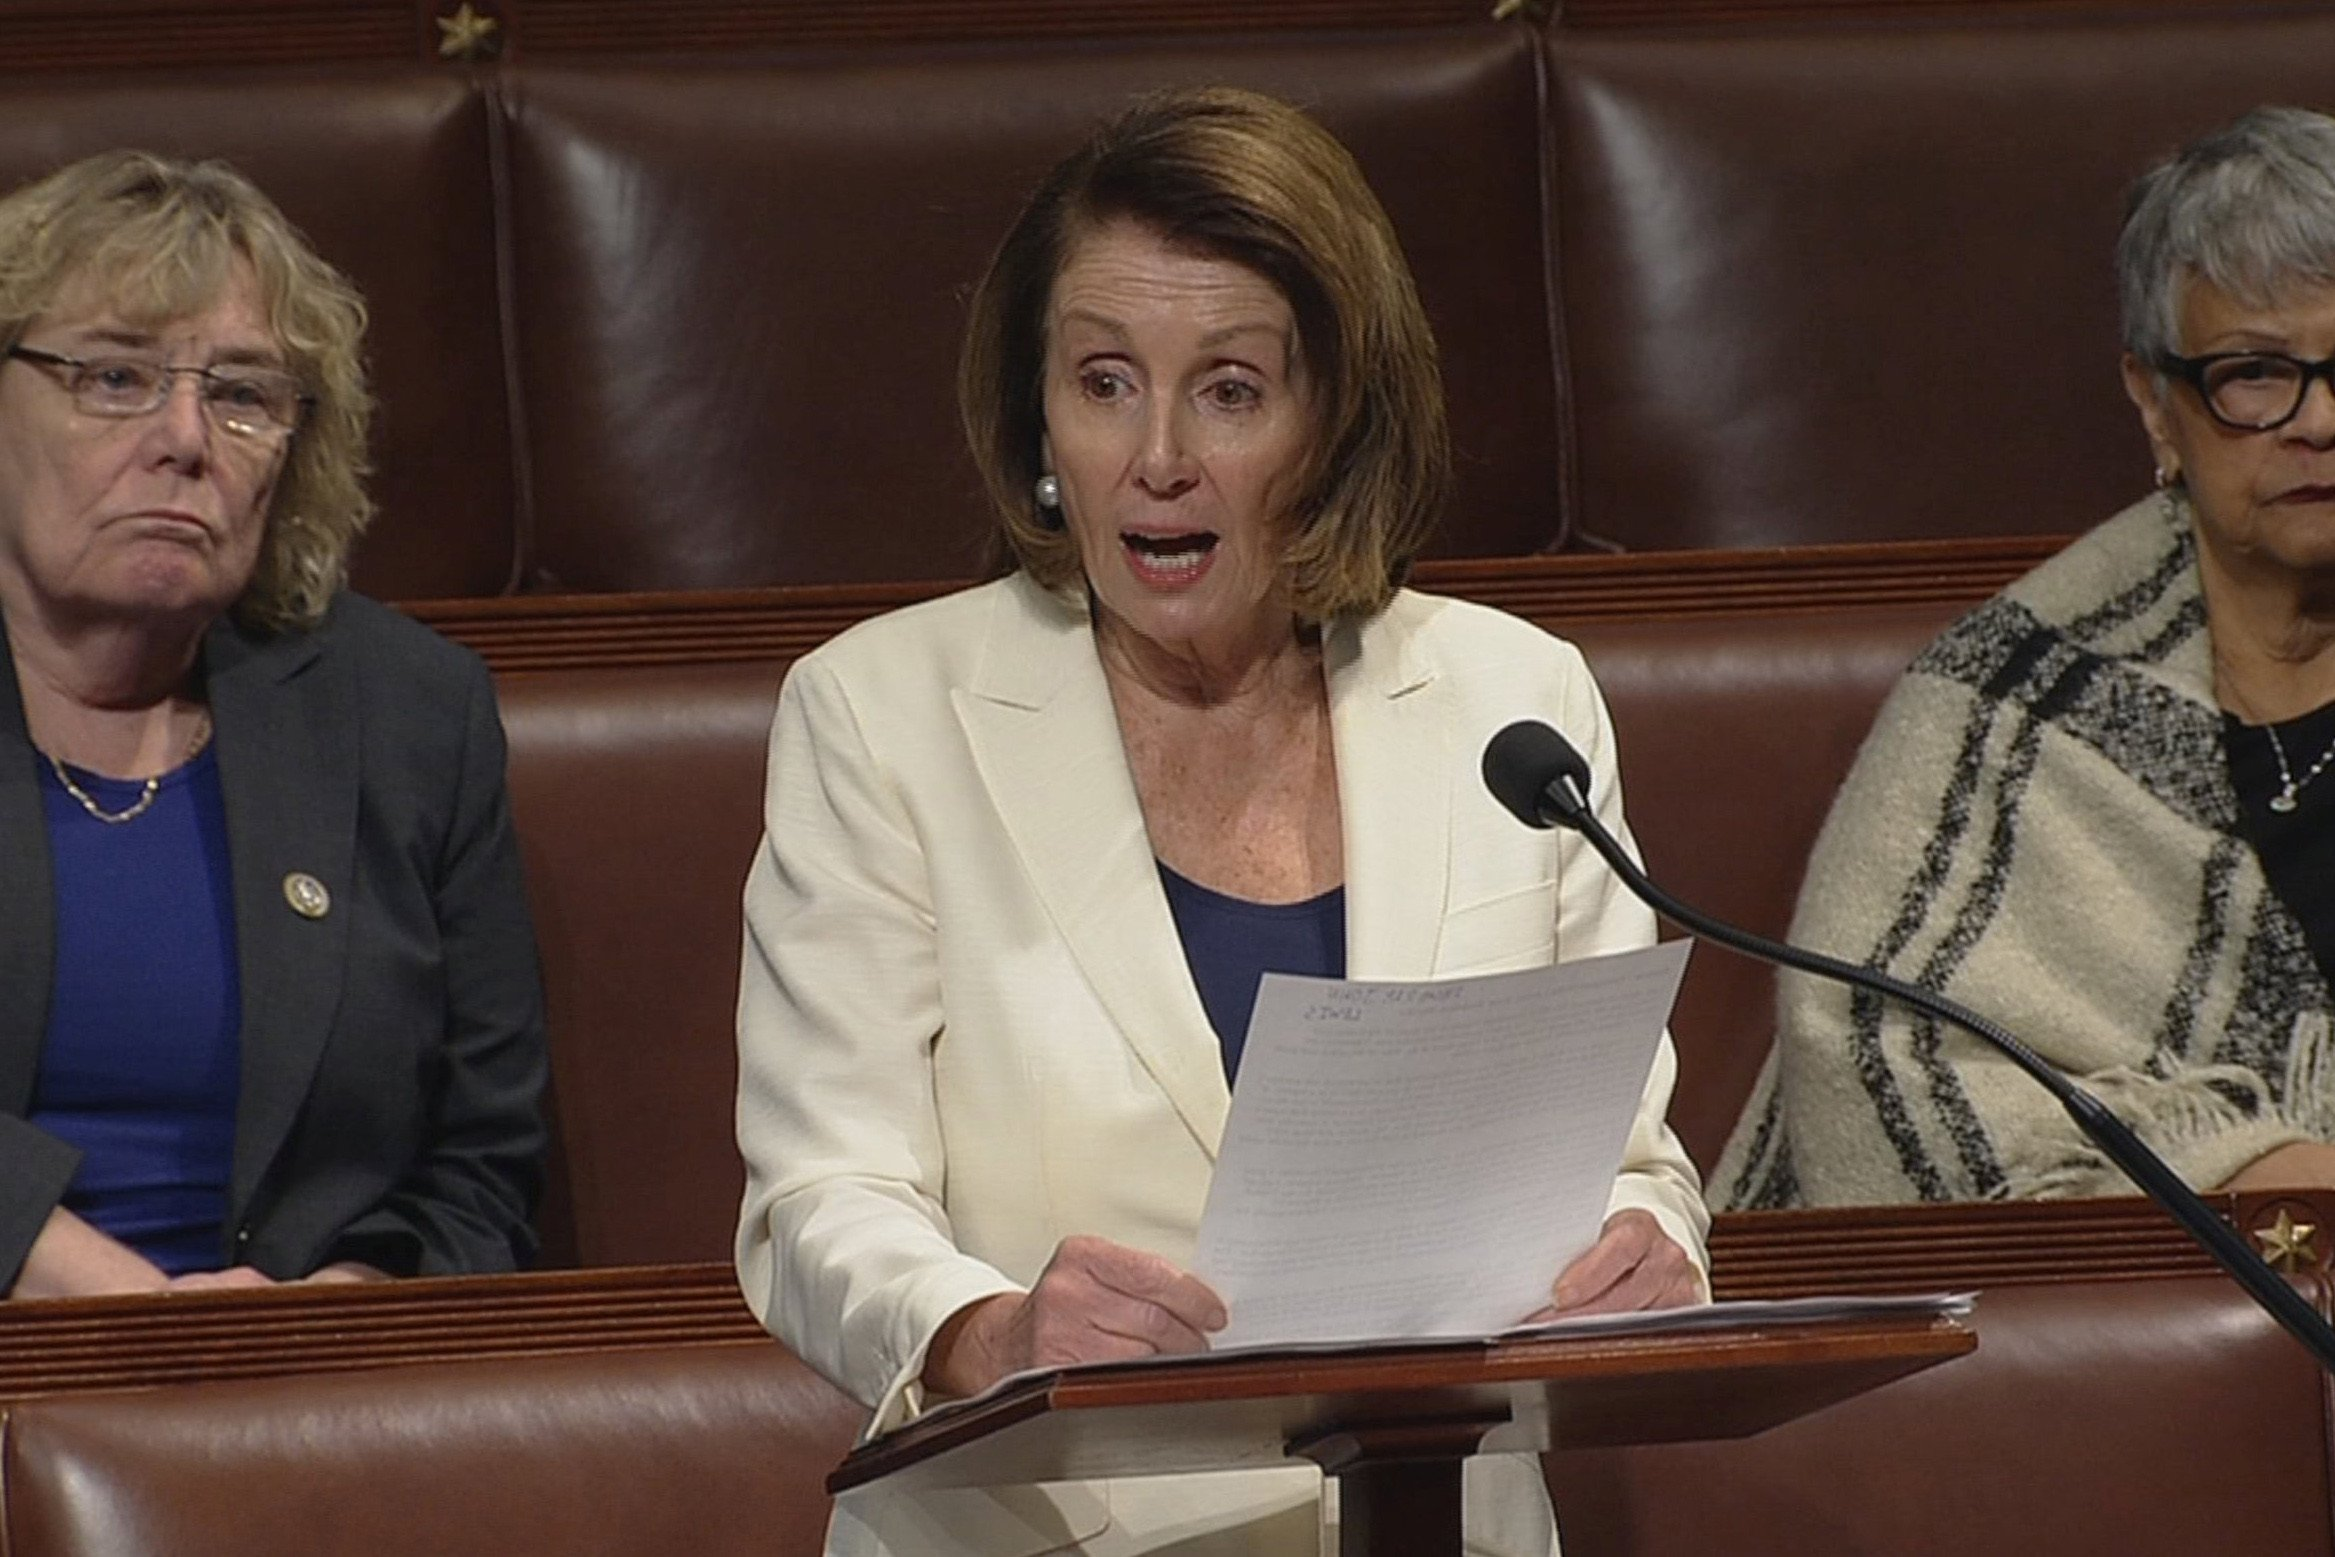 Pelosi Trumps Proposed Border Wall Is Too High Obnoxious in a Civilized Society VIDEO